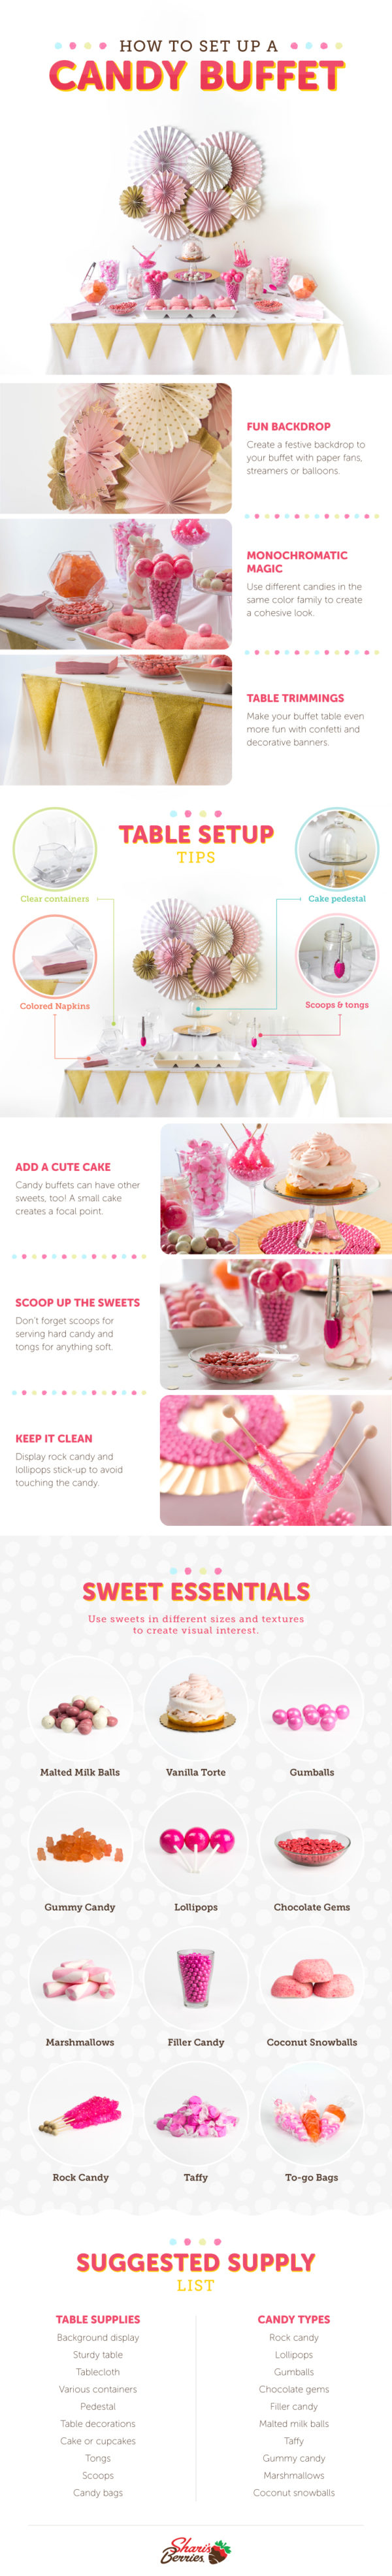 Diy candy buffet baby shower ideas themes games candy buffet do it yourself baby shower decorations solutioingenieria Images